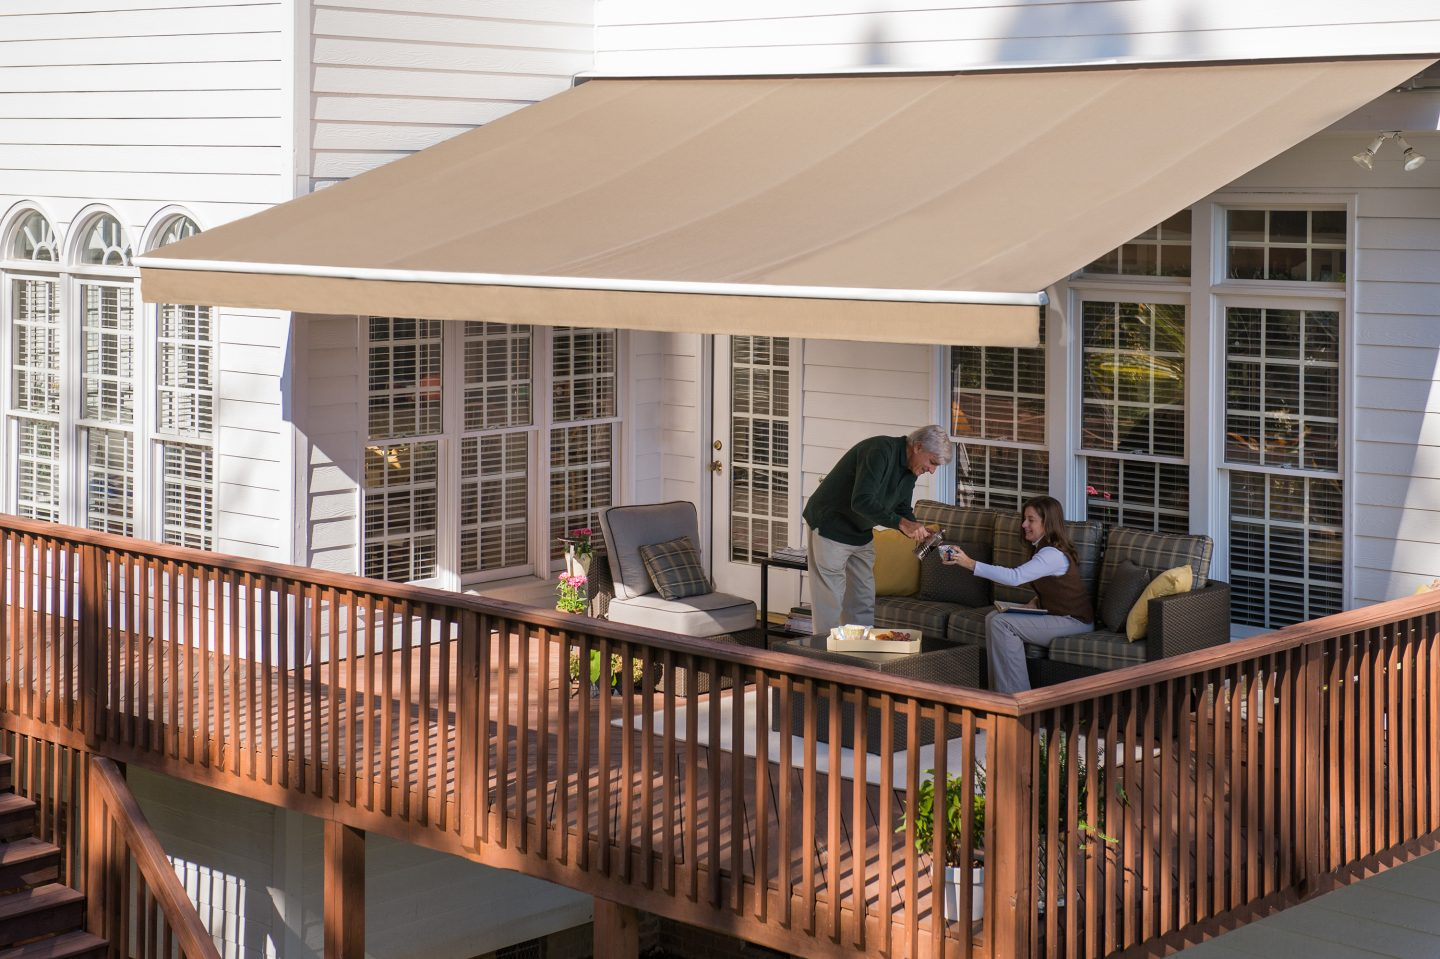 Dozier Solair Awning